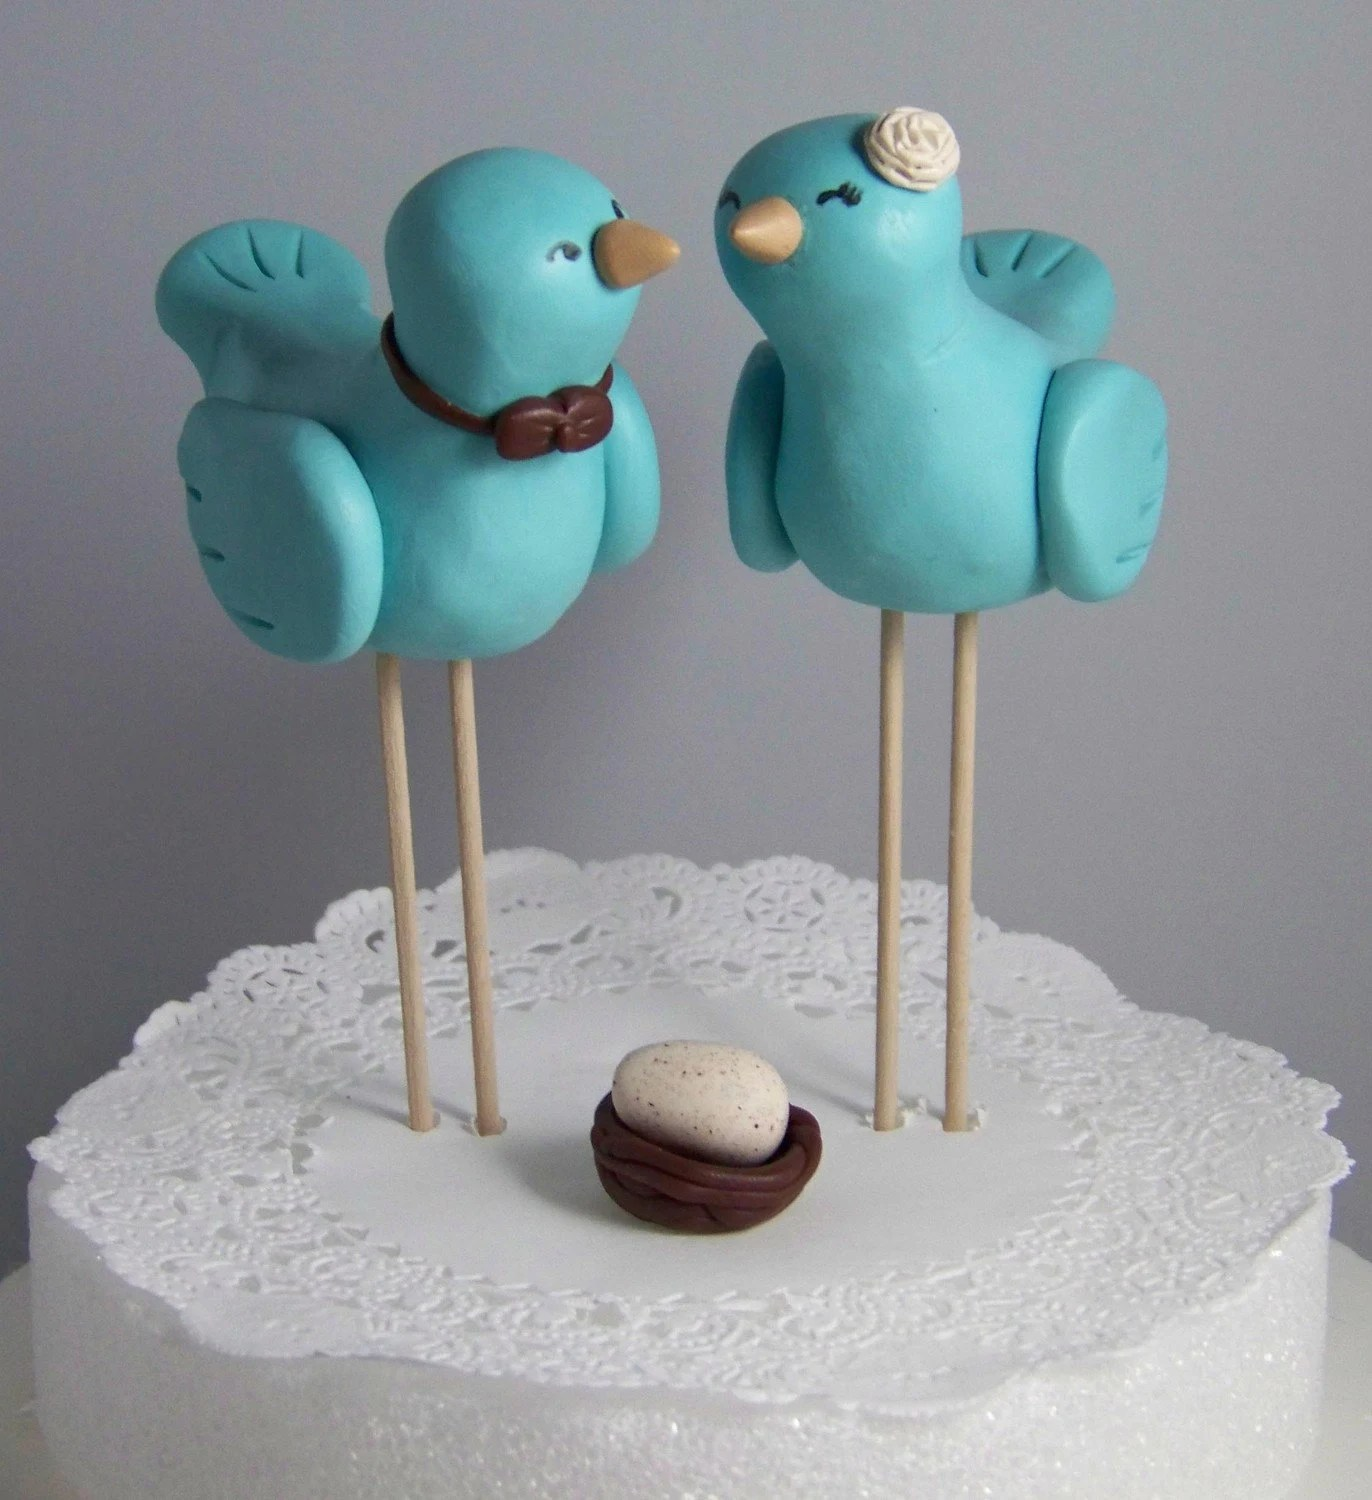 Large Nuzzling Love Birds Cake Topper with Nest and Speckled Egg Hand Sculpted Choice of Colors